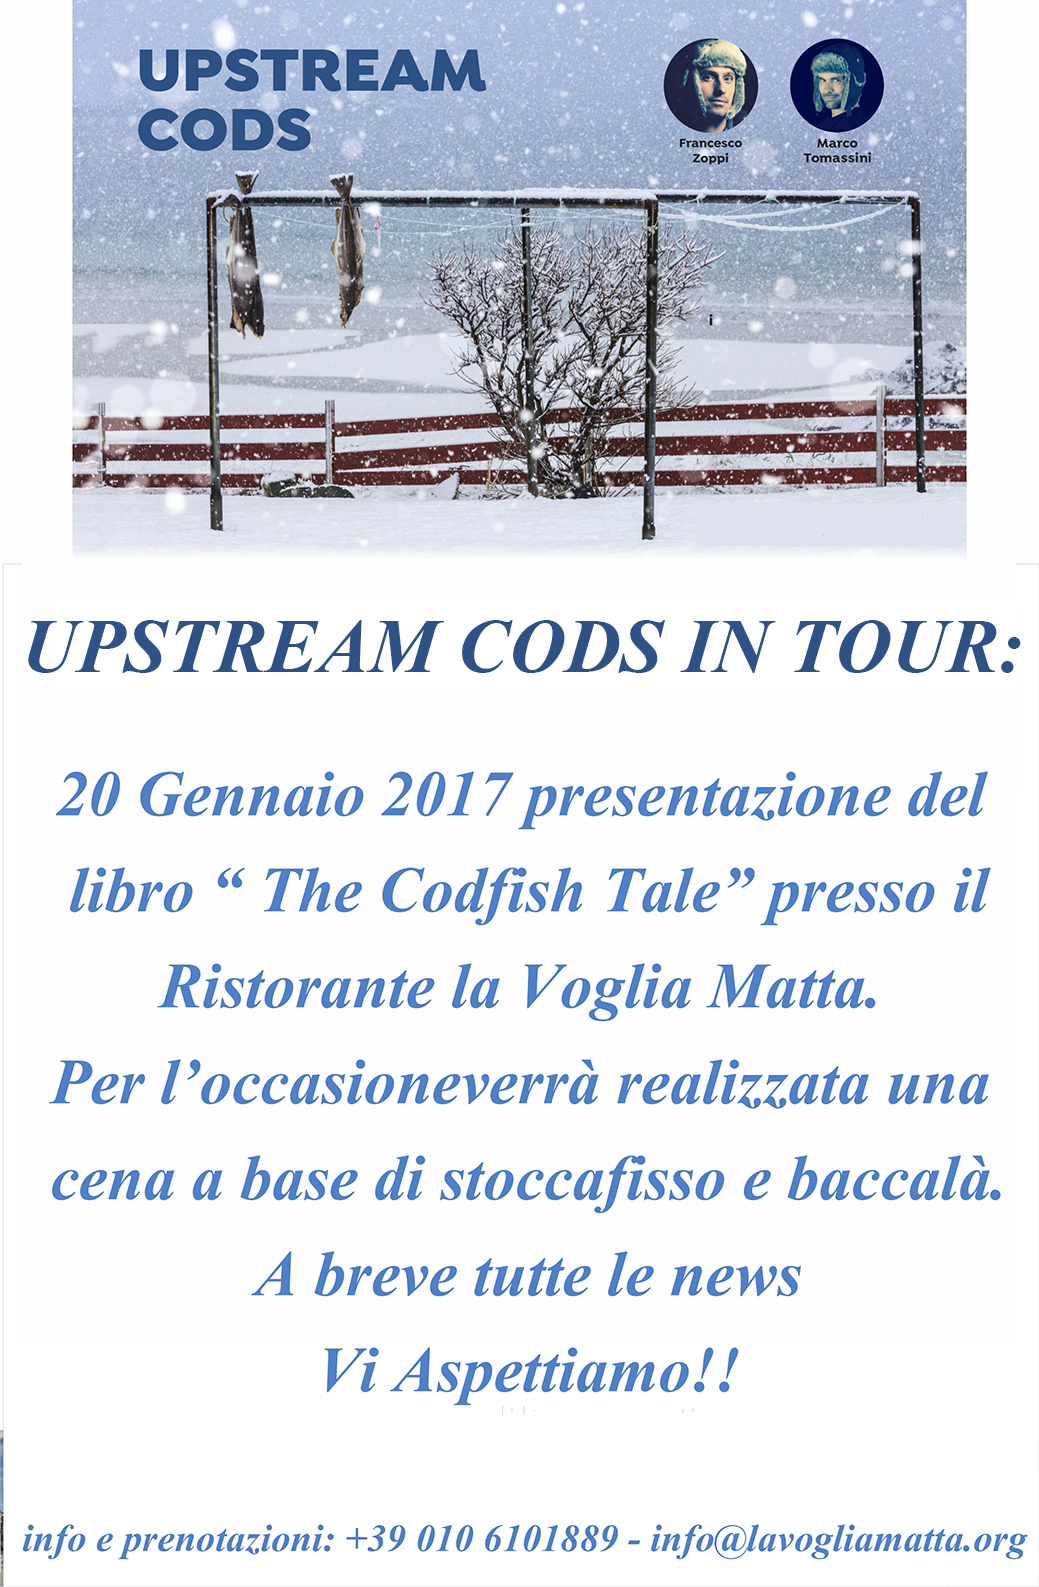 upstream-cods-in-tour